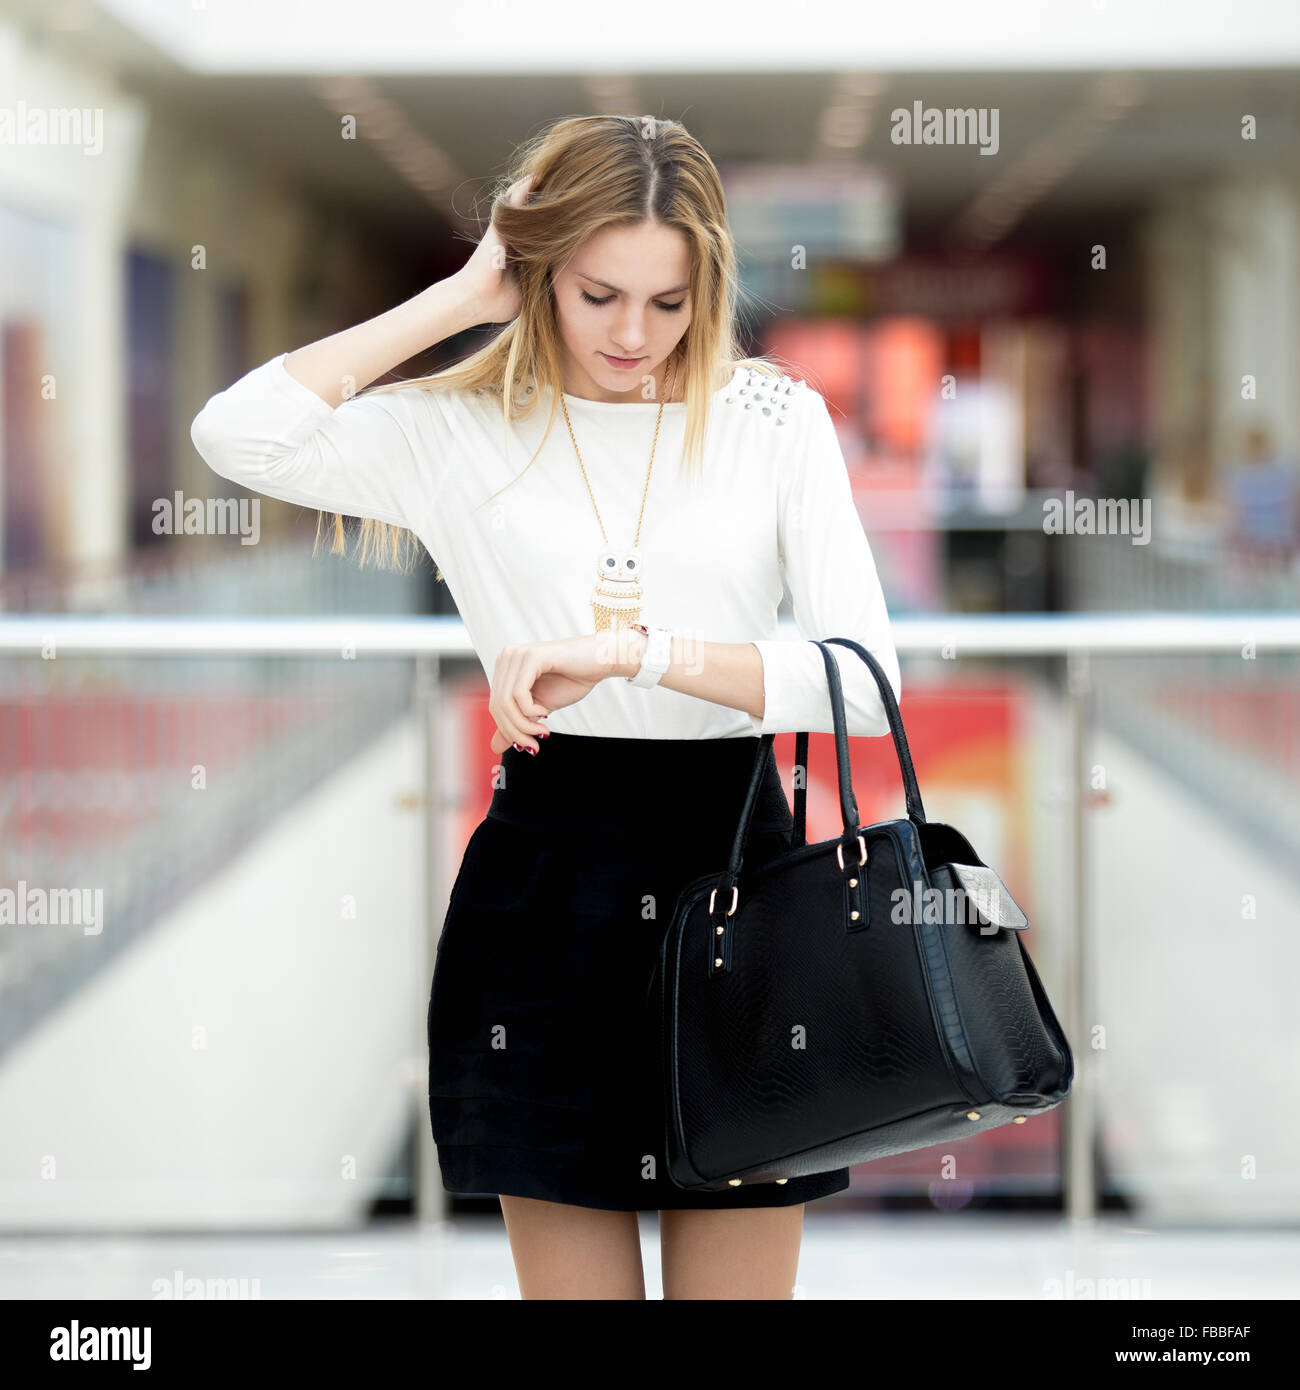 Young business woman in fashionable outfit, holding her head in dismay, running late for meeting, hurrying, waiting, - Stock Image